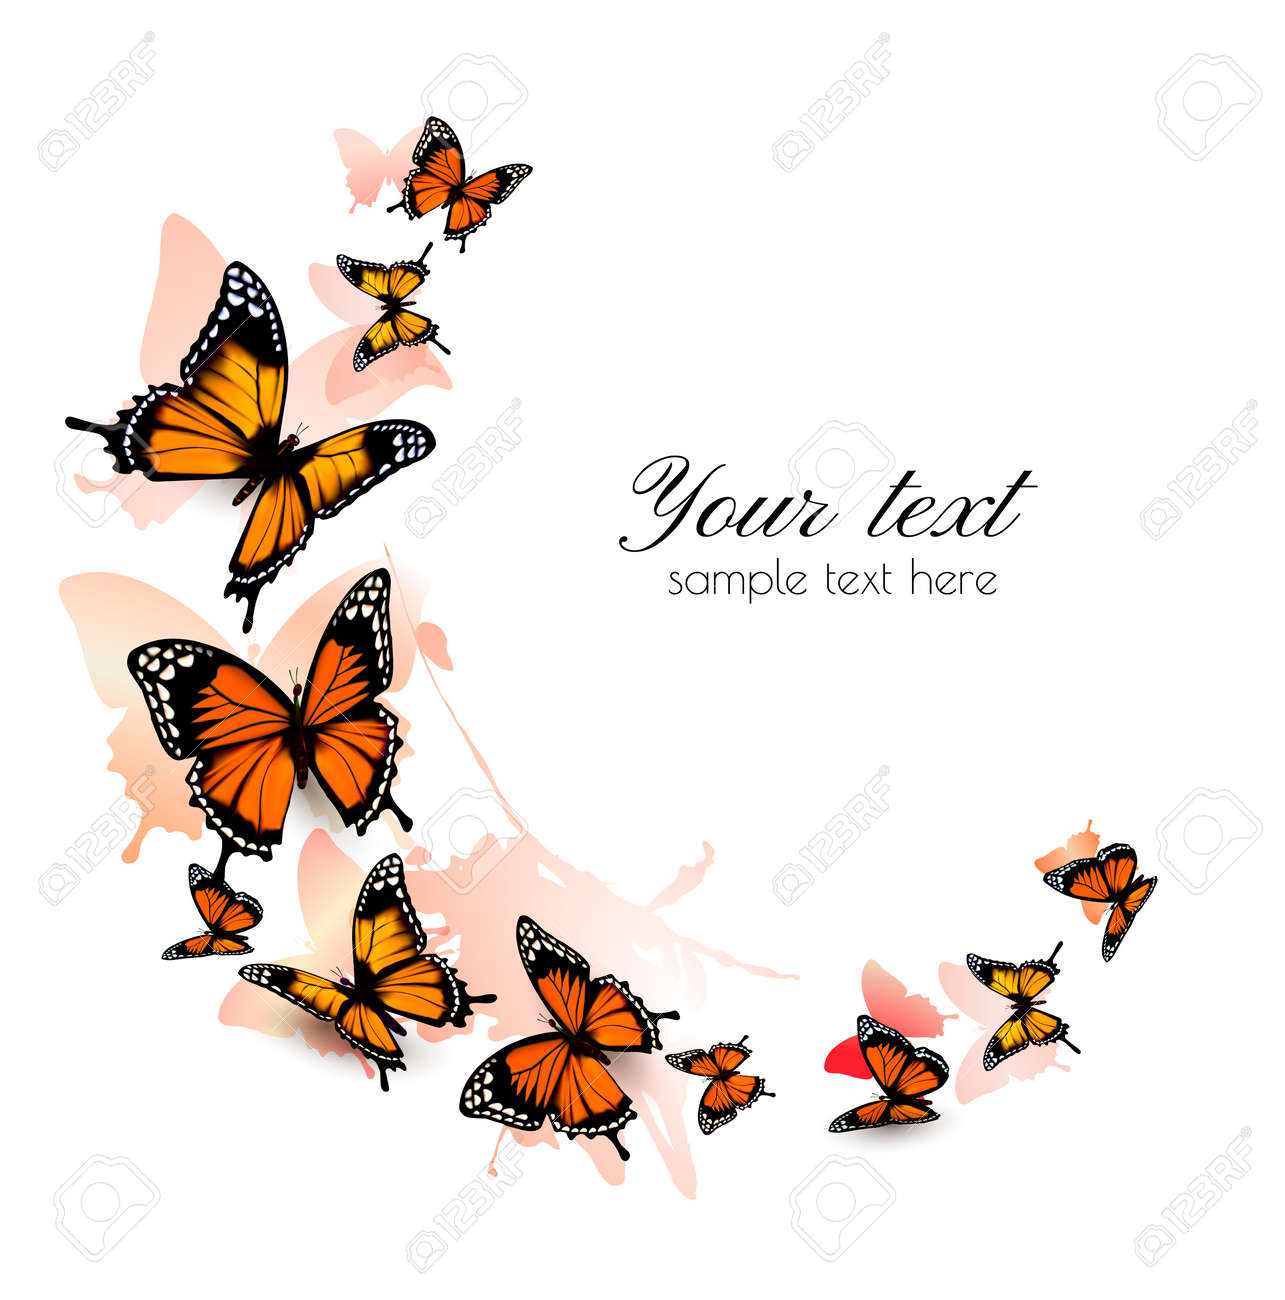 Beautiful butterfly background. Vector. - 51833013